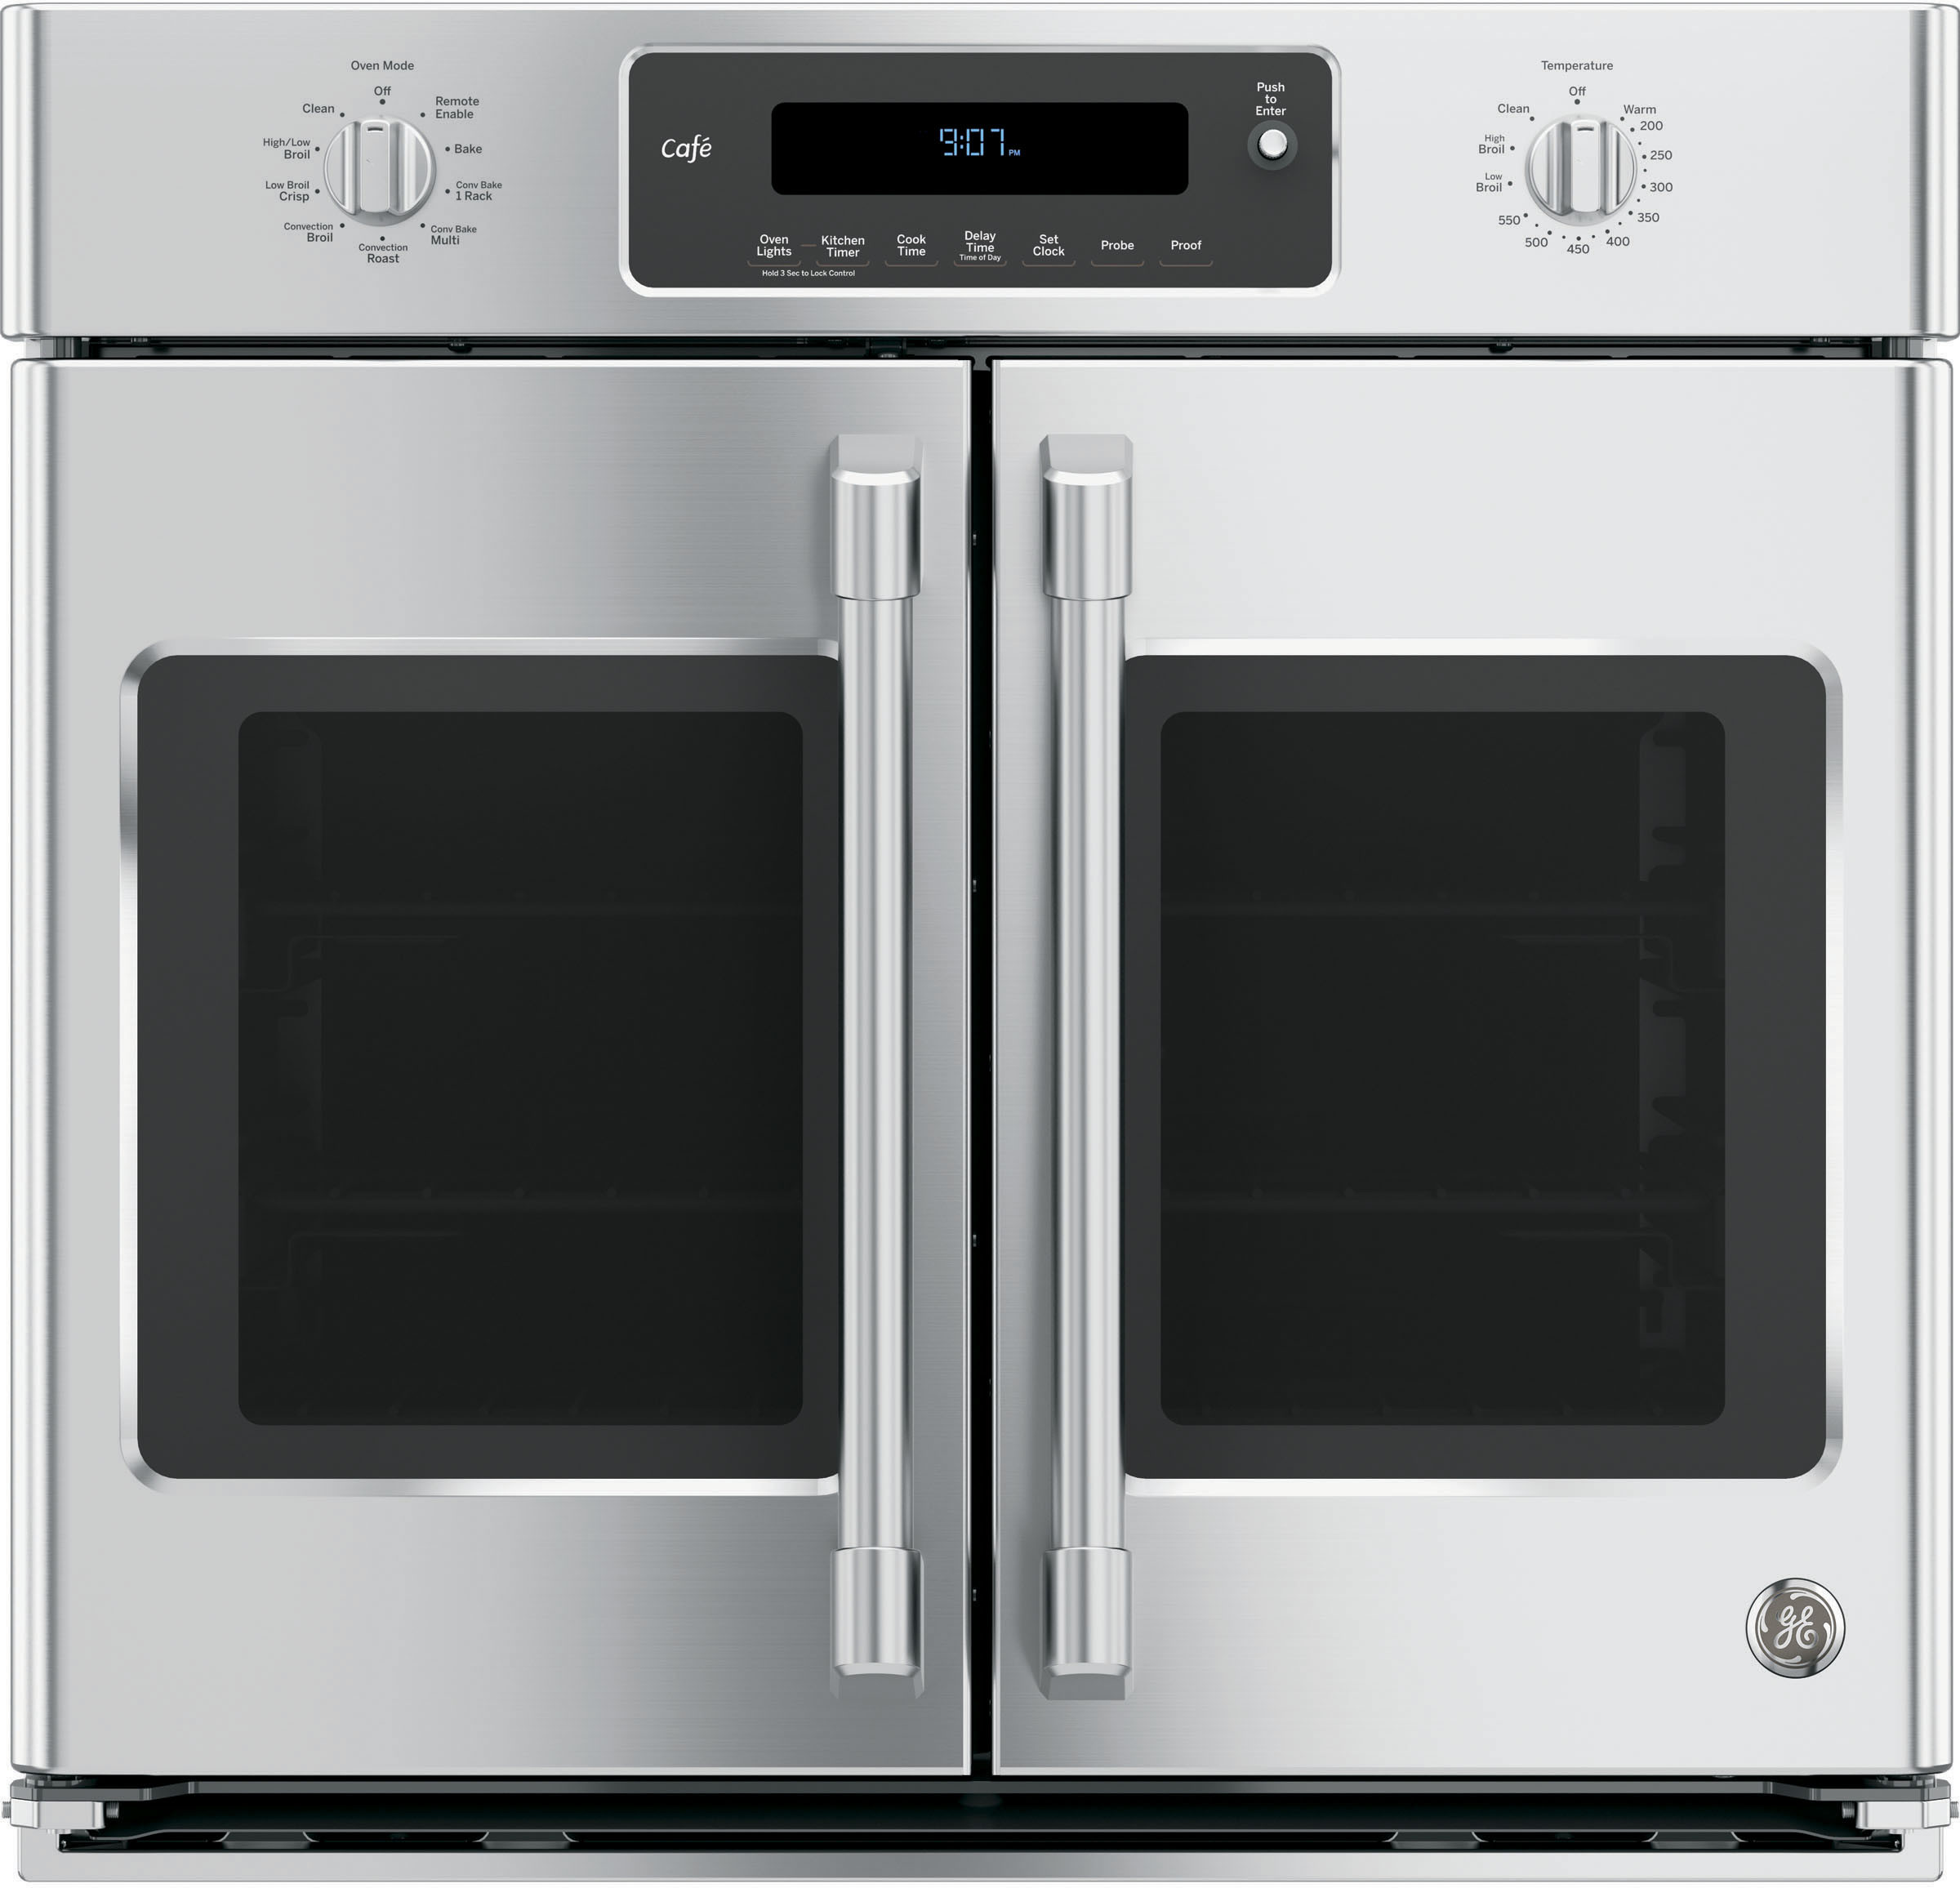 24 inch built in oven microwave combo - 24 Inch Built In Oven Microwave Combo 54